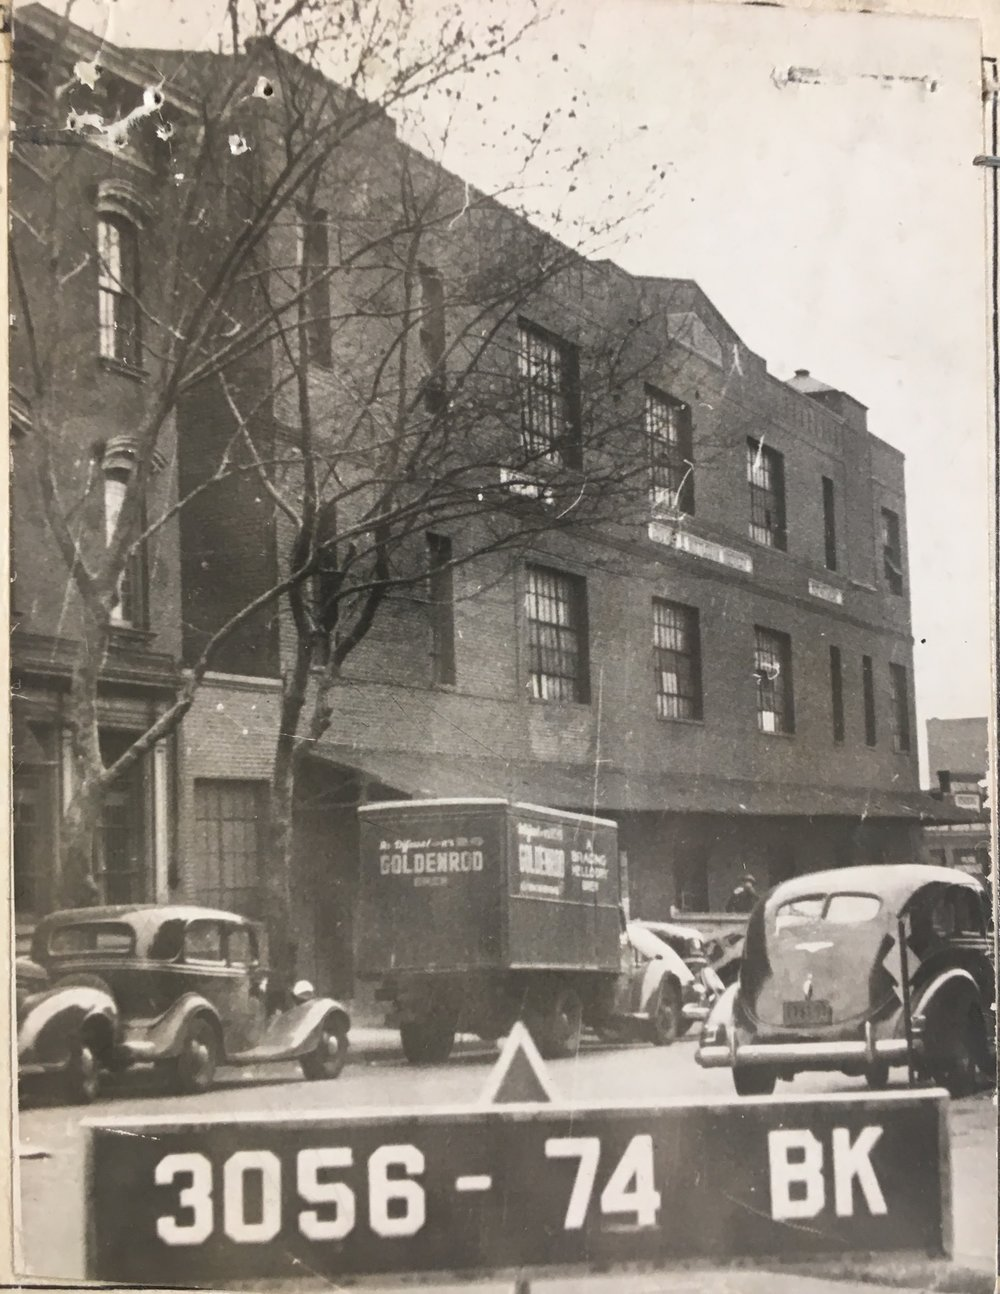 1 Bushwick Place, which was home to the Hittleman Brewery Company, seen here in the 1940s. Department of Finance Collection, NYC Municipal Archives.